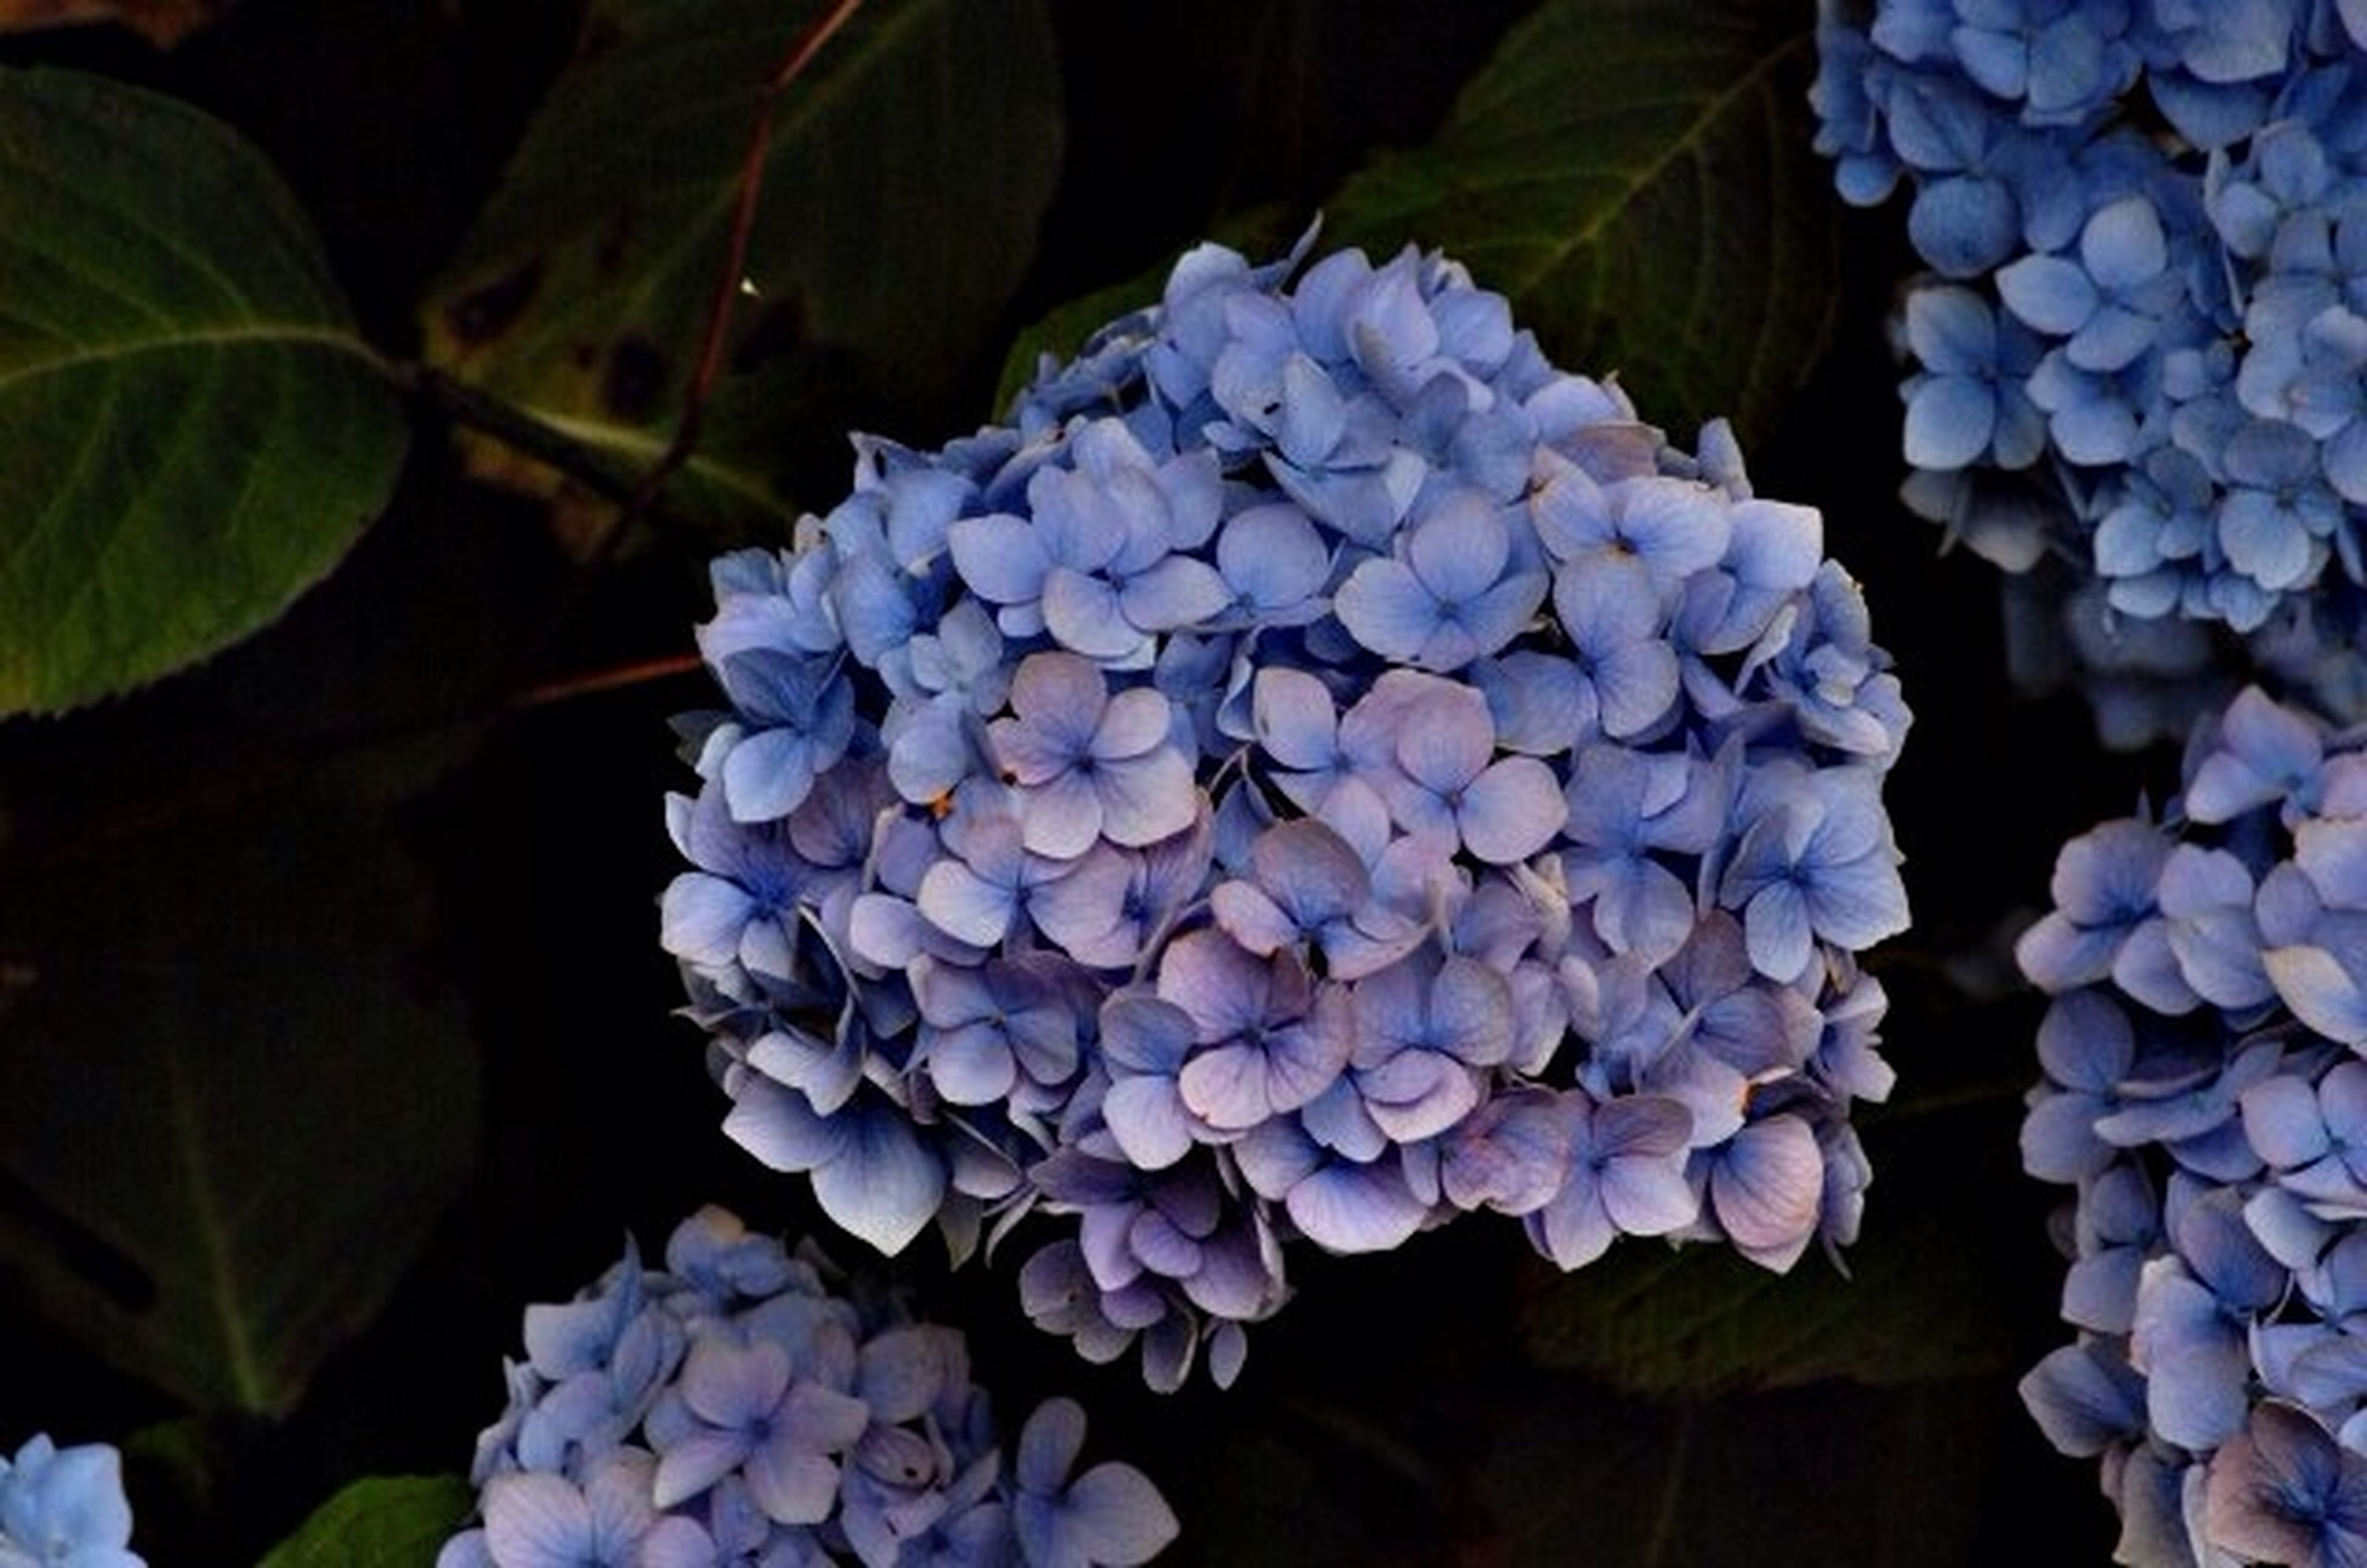 flower, freshness, growth, fragility, beauty in nature, purple, plant, petal, nature, flower head, close-up, leaf, blooming, hydrangea, in bloom, park - man made space, focus on foreground, botany, blue, blossom